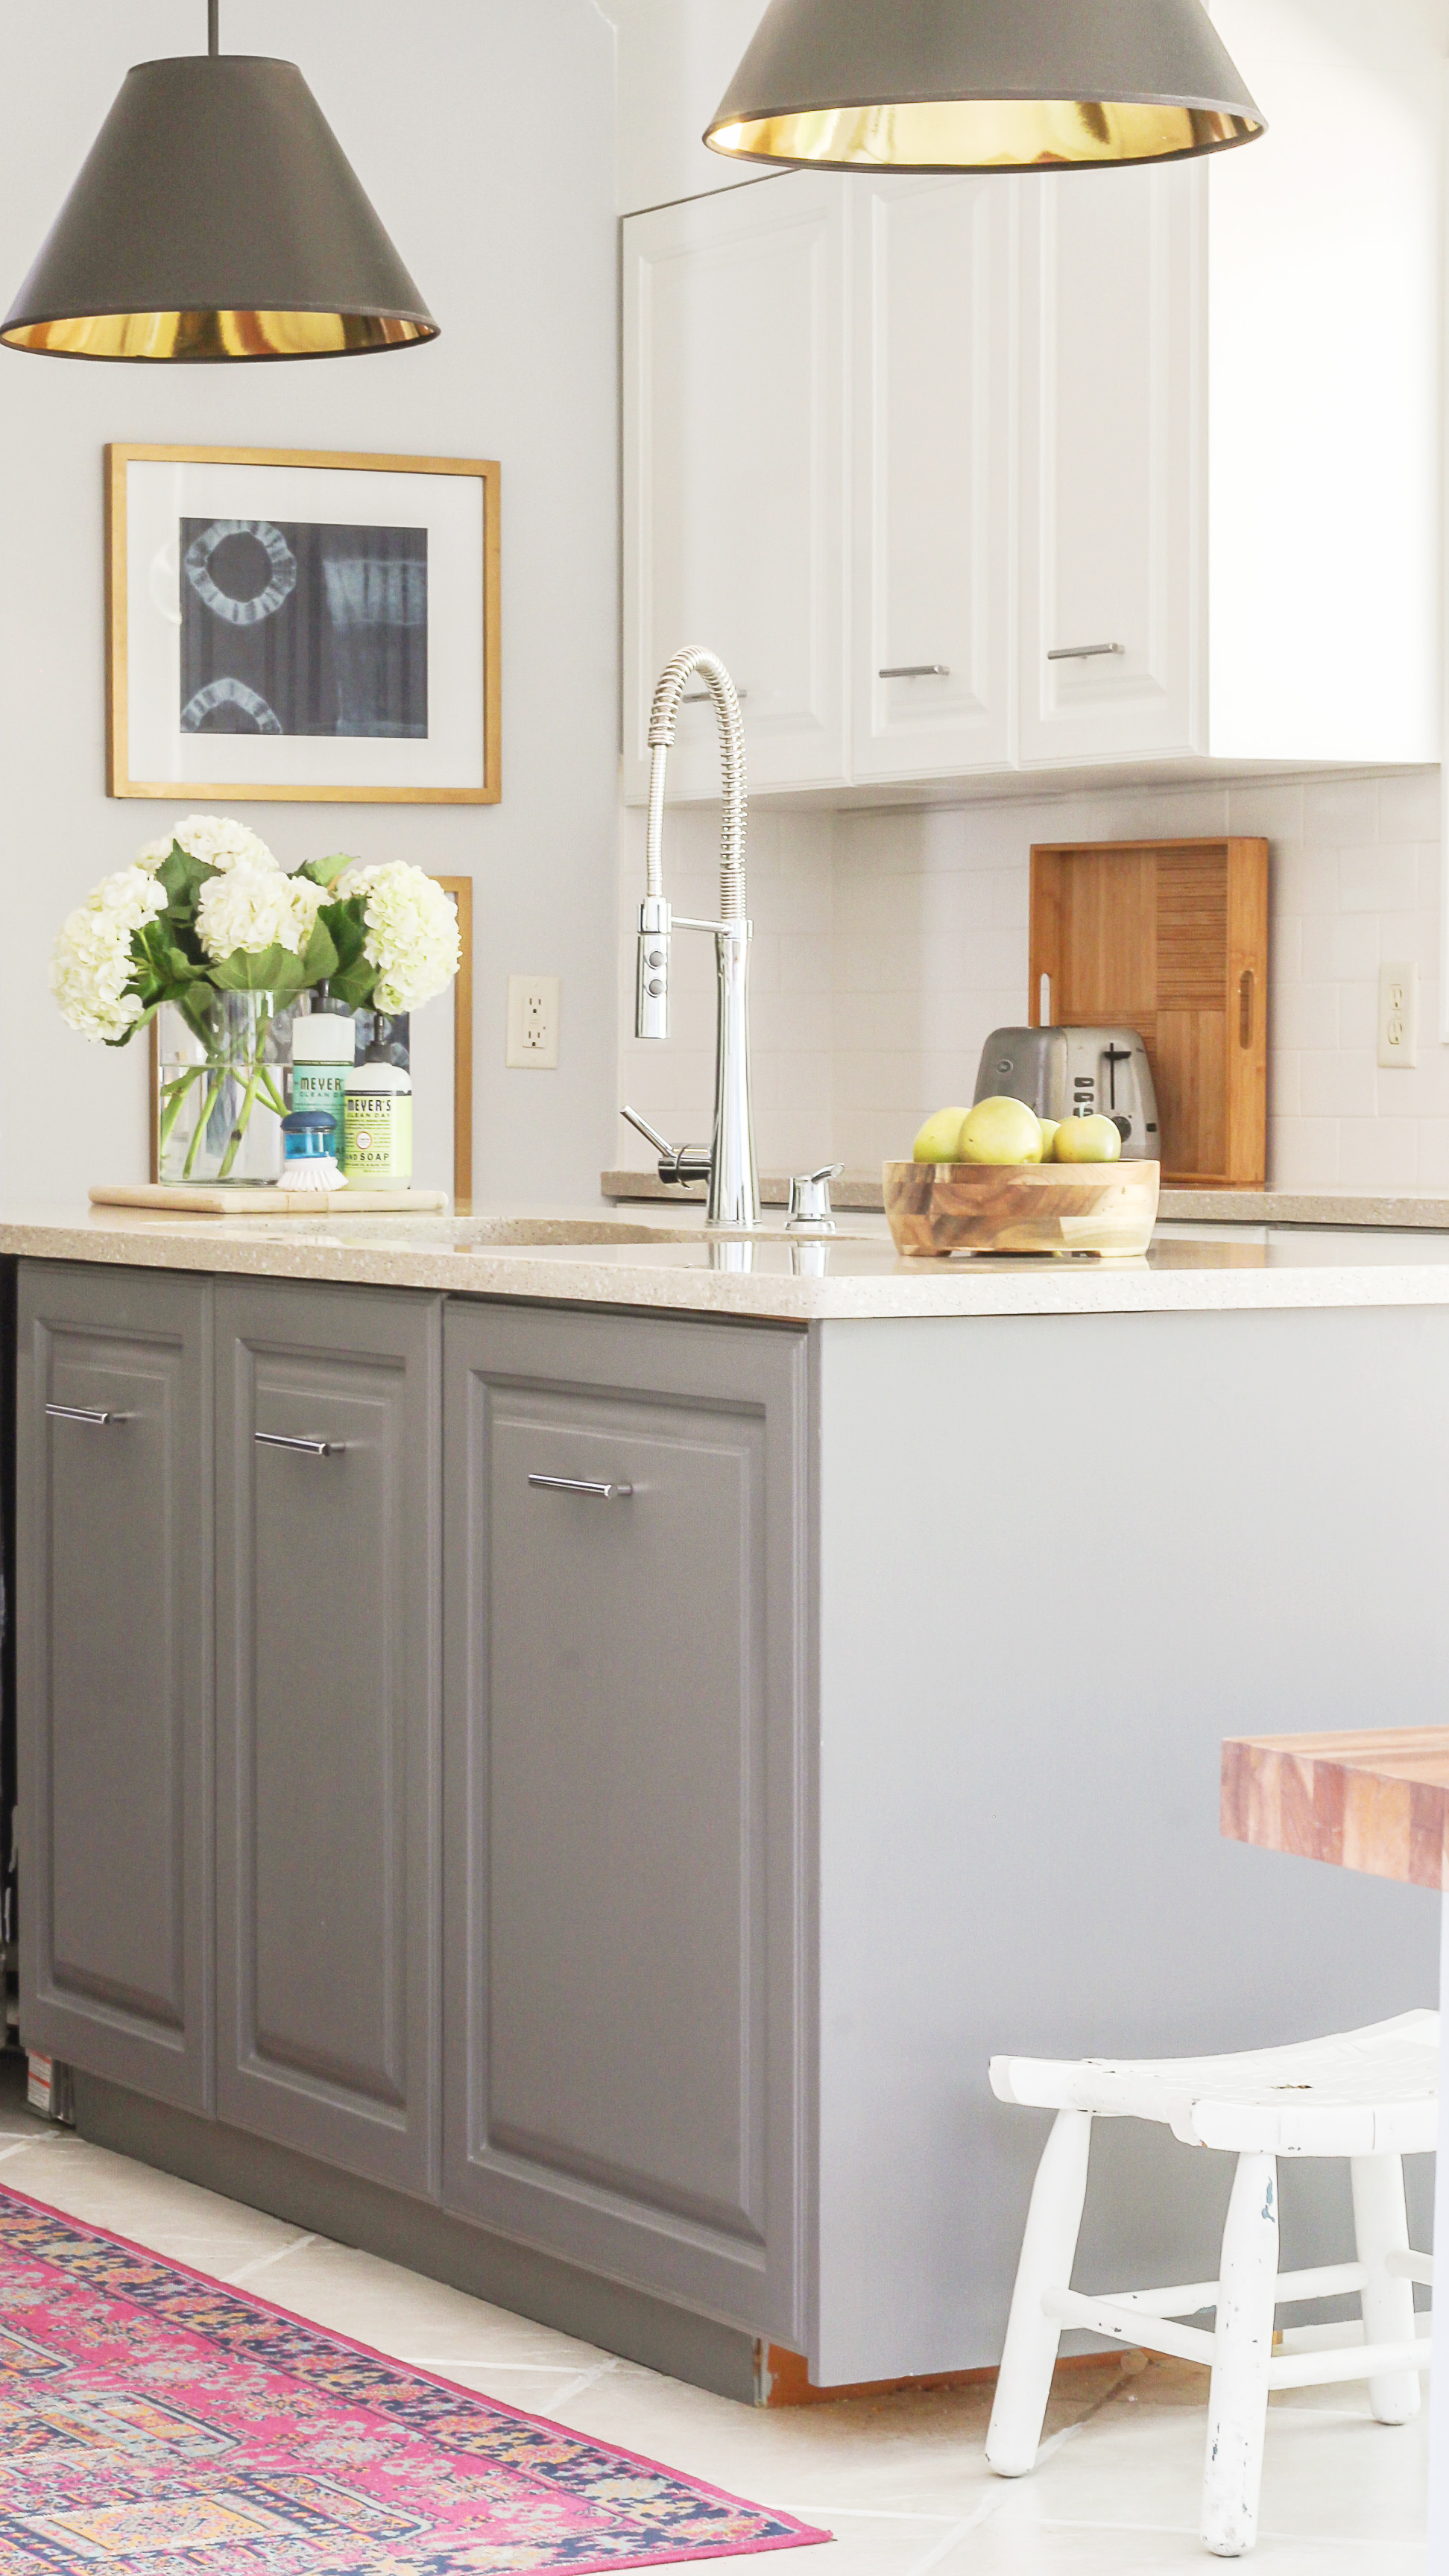 Fastest Way To Paint Kitchen Cabinets The Ultimate Hack,Blue And White Porcelain Tile